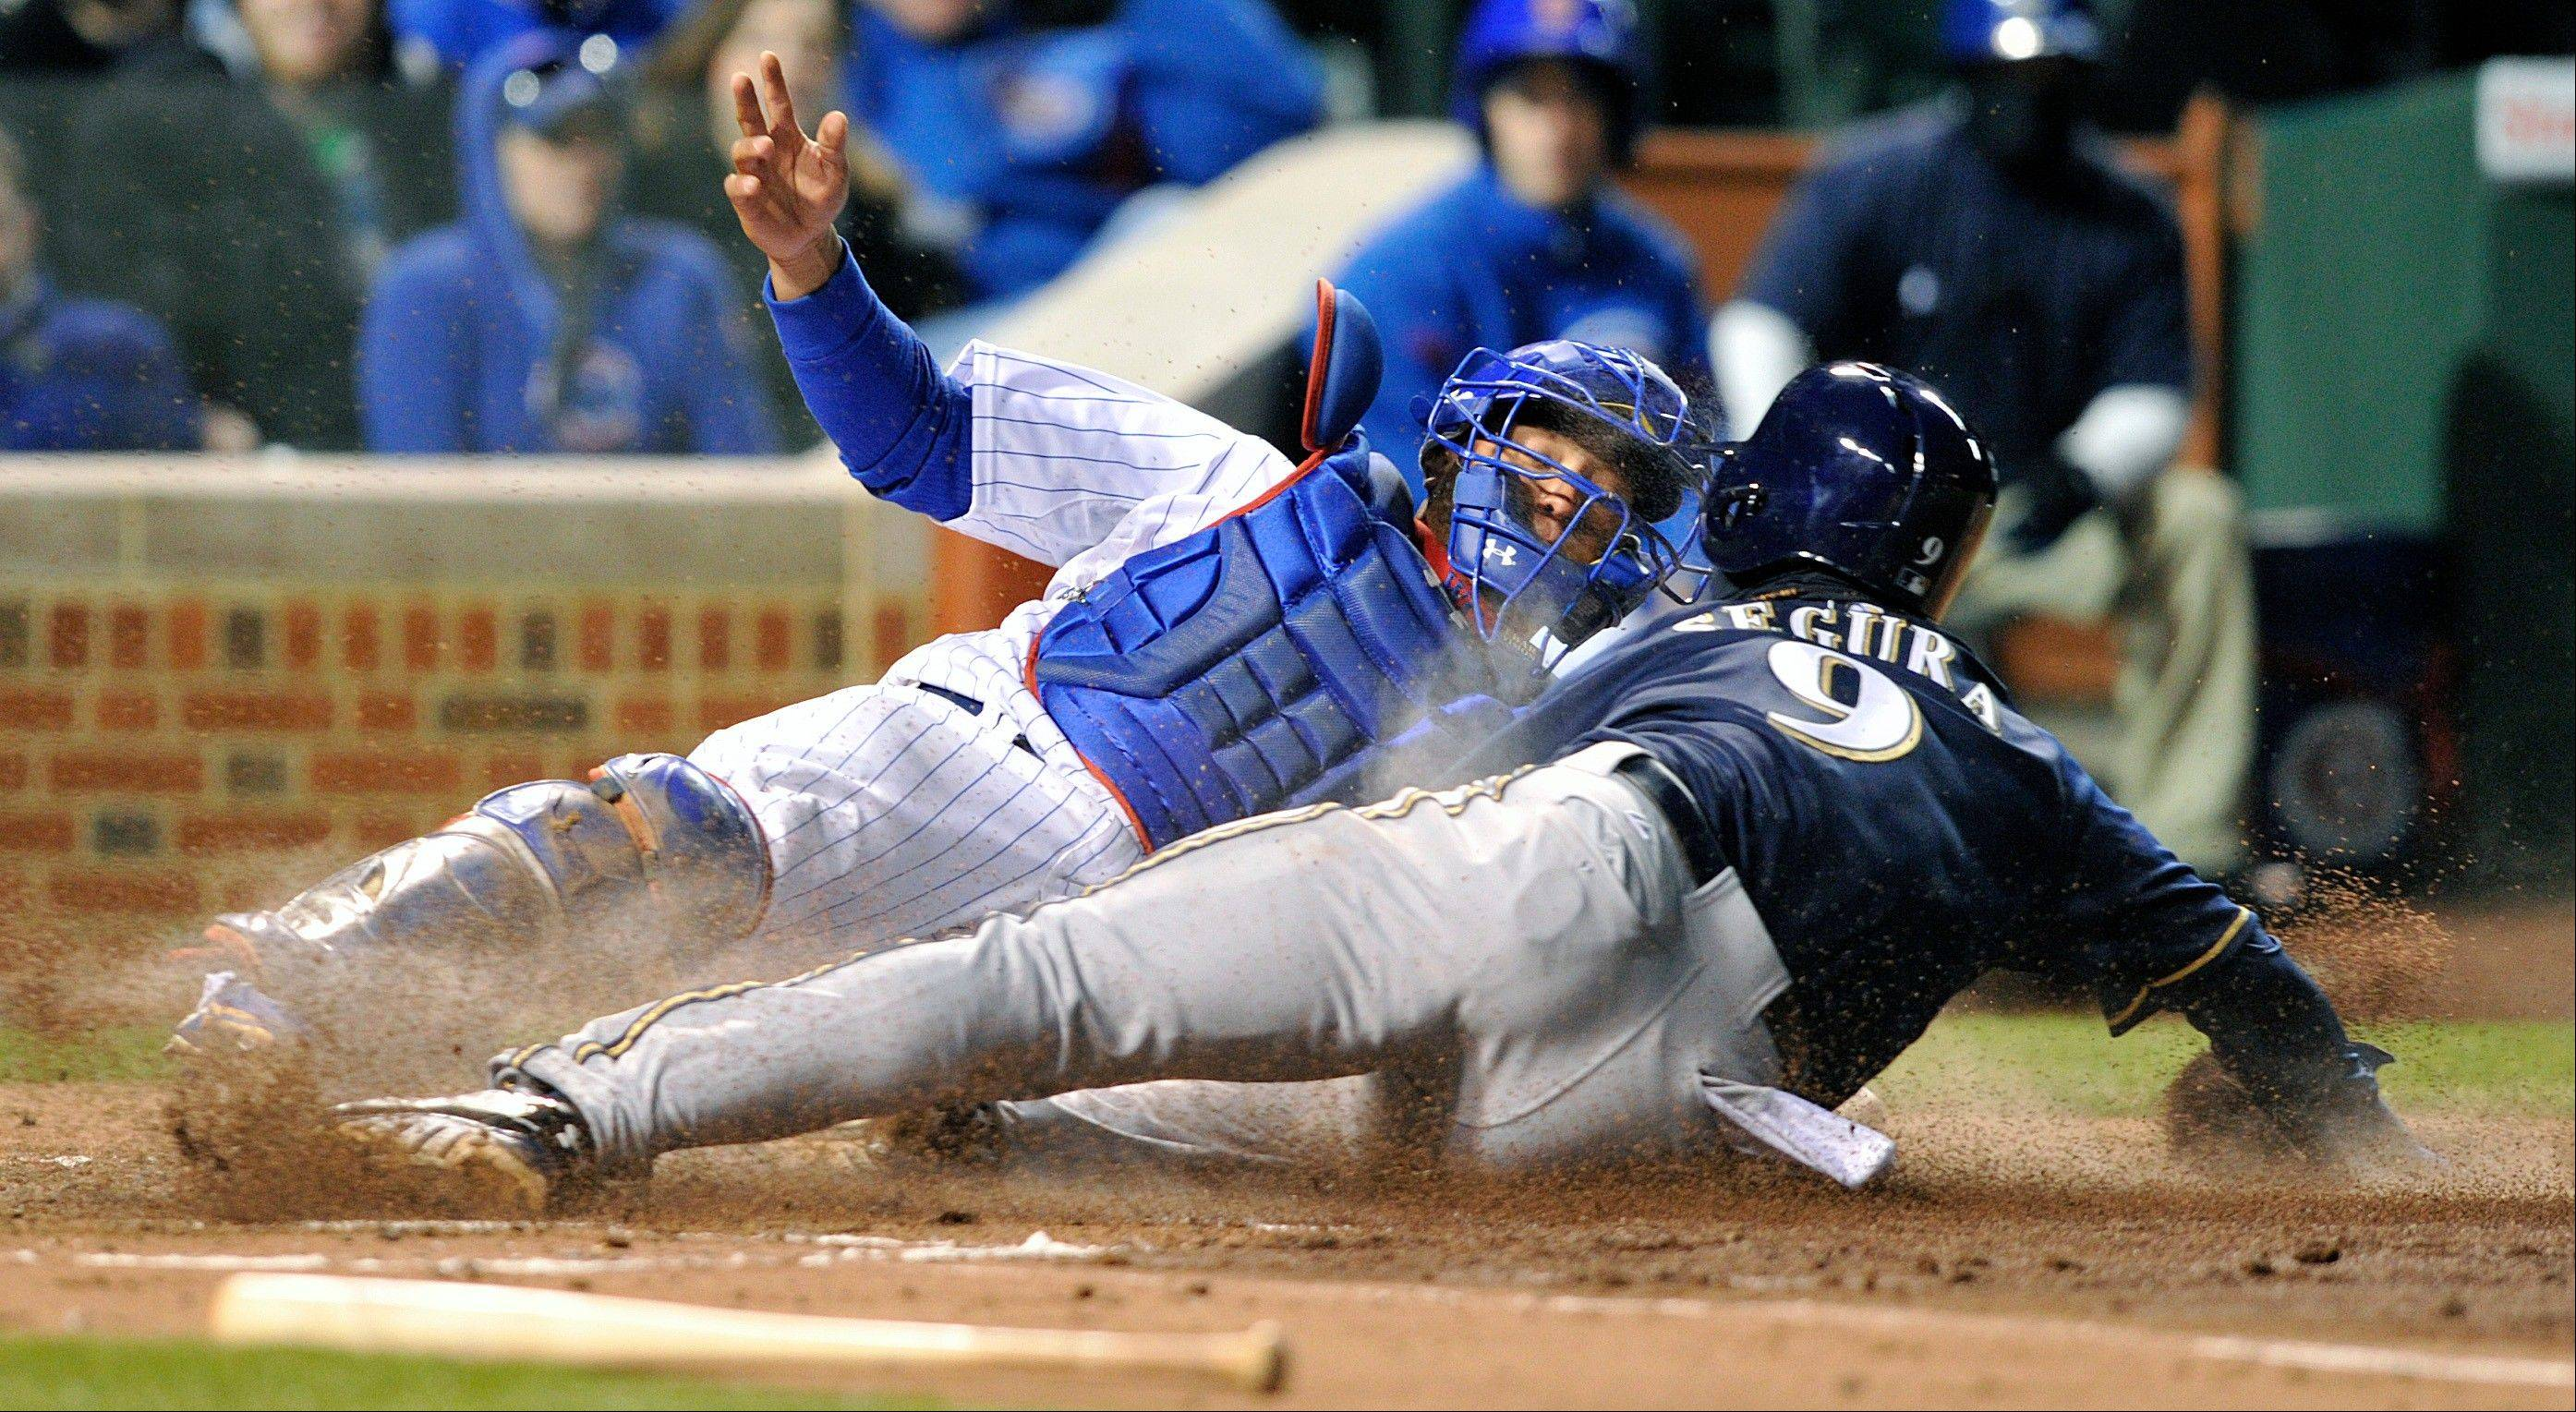 Welington Castillo misses the tag on the Milwaukee Brewers' Jean Segura (9) as Segura scores on a ball hit by Norichika Aoki during the second inning Tuesday, April 9, 2013, in Chicago.